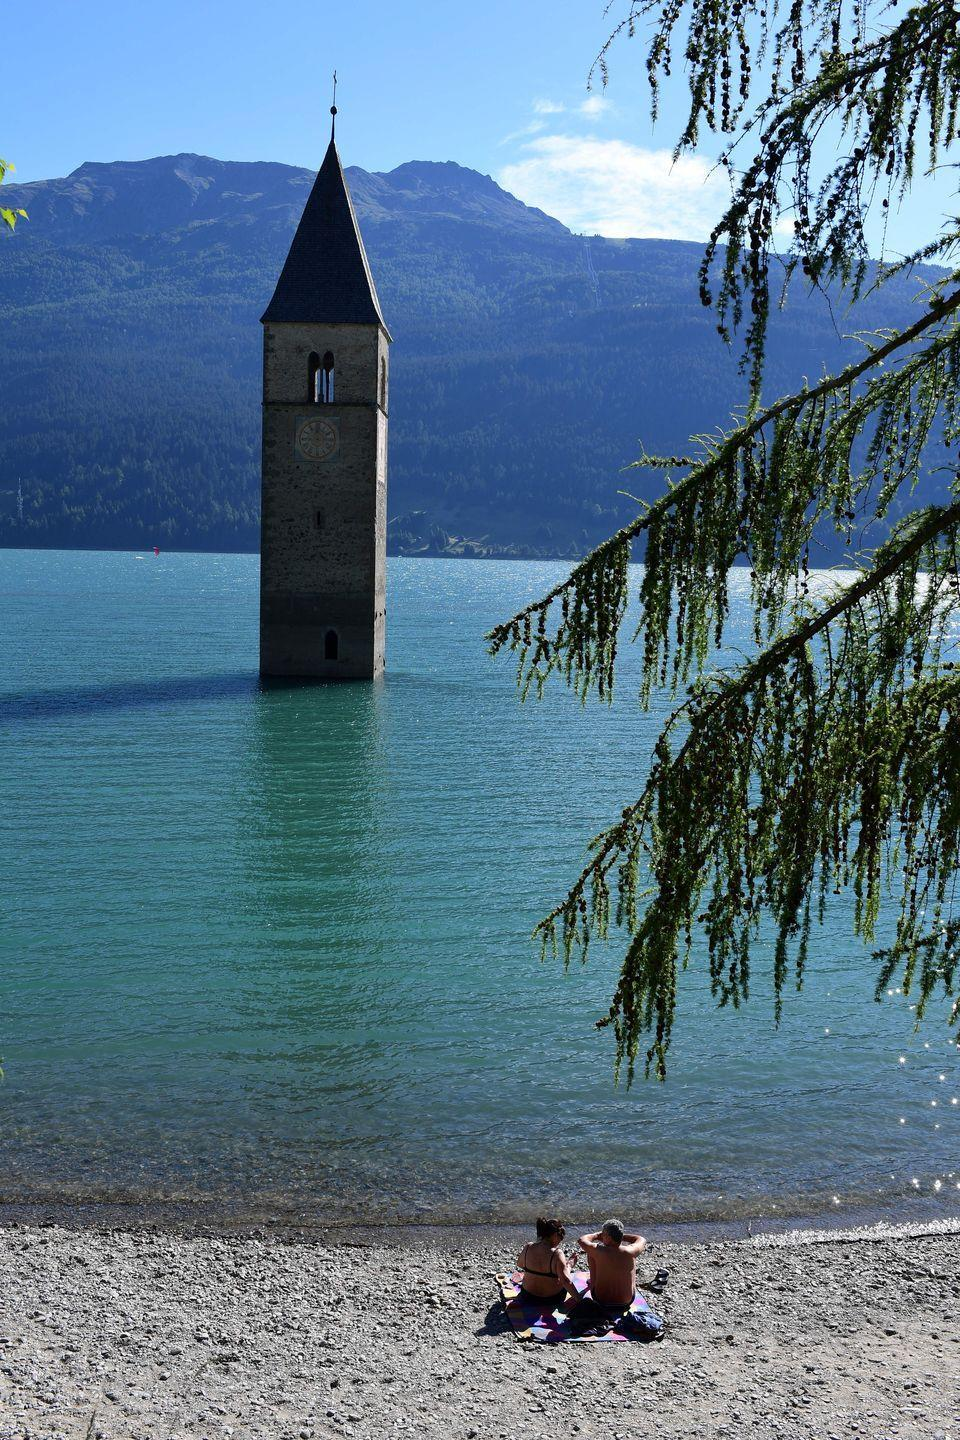 <p>Tourists marvel at the otherworldly scene of the church clock tower over 20 feet above the surface of the water. </p>